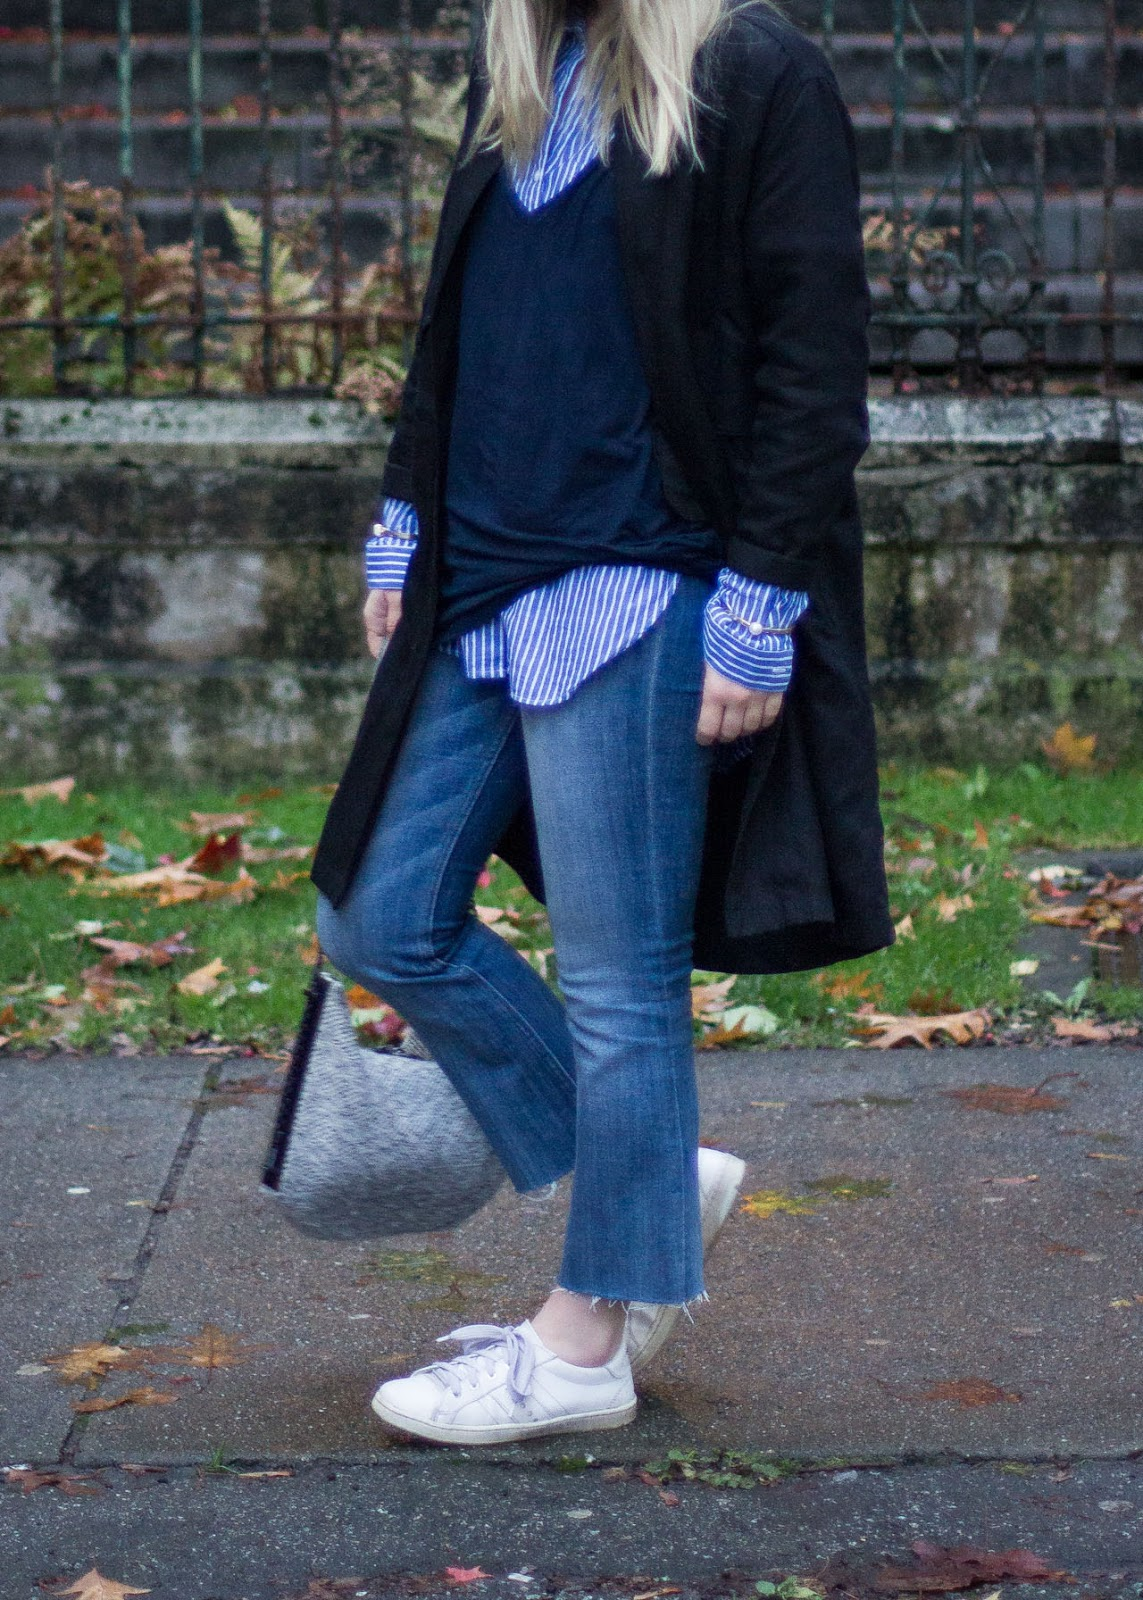 Favorite Fall spot in Vancouver - Canadian Fashion Blogger - Outfit - Aritzia - Zara